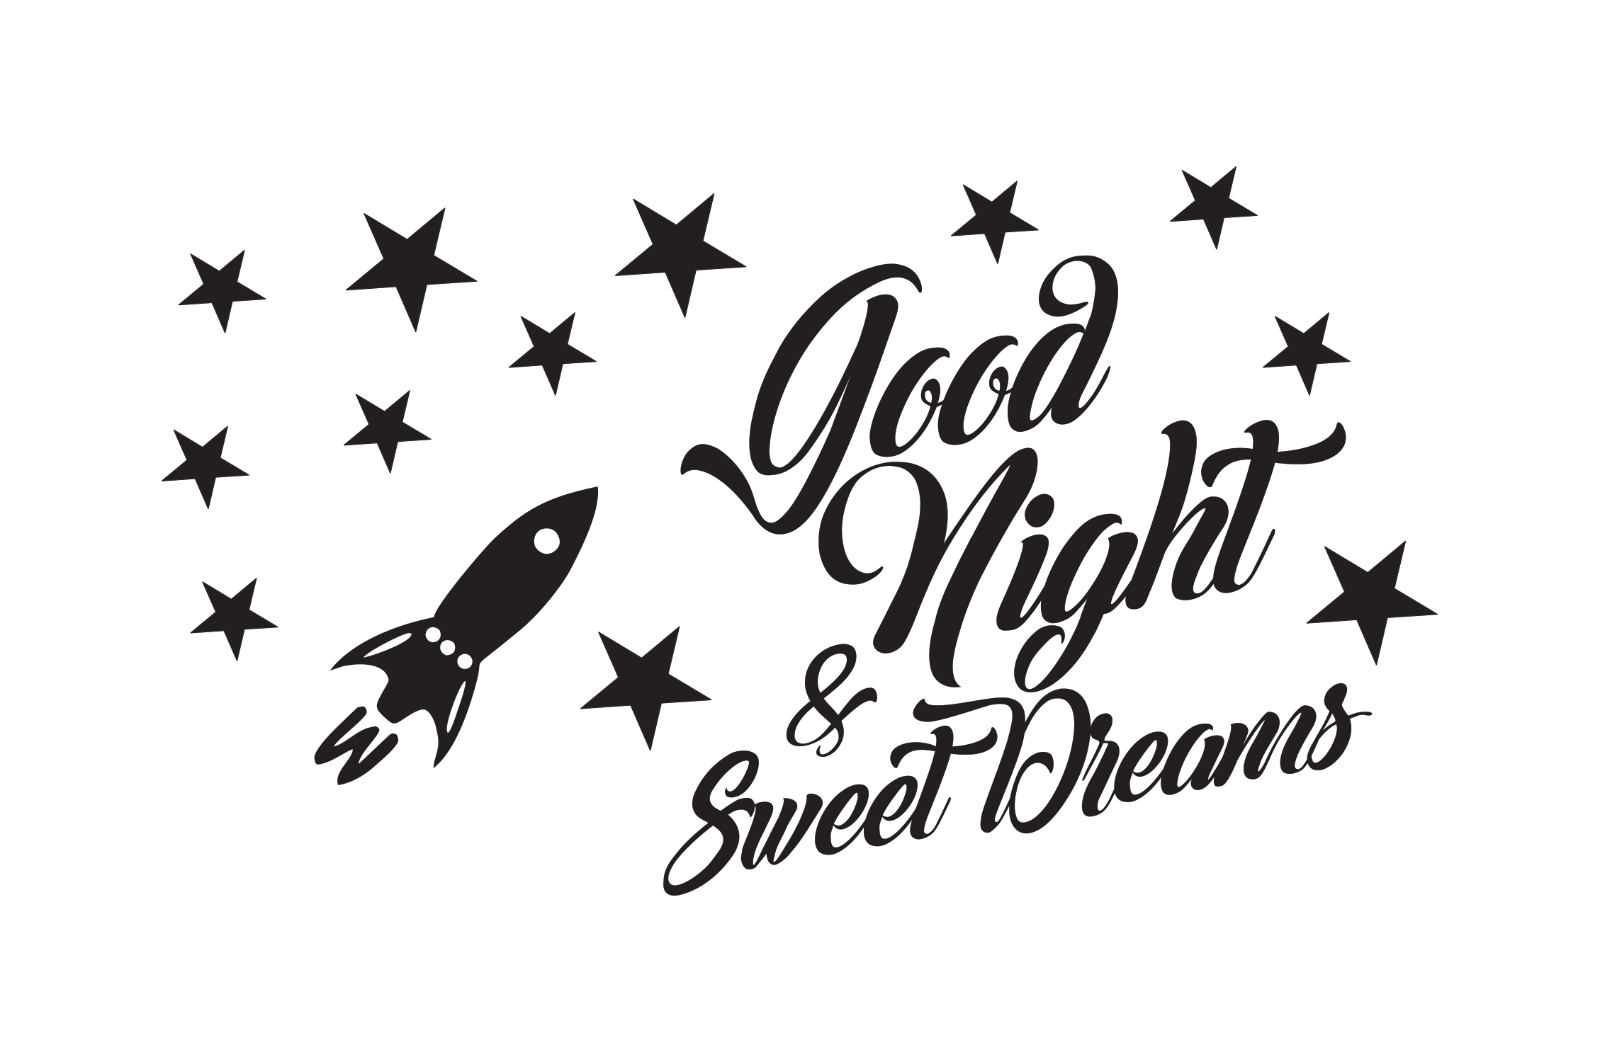 Good Night Sweet Dreams Vinyl Vinyl Vinyl Decal 4f12ad